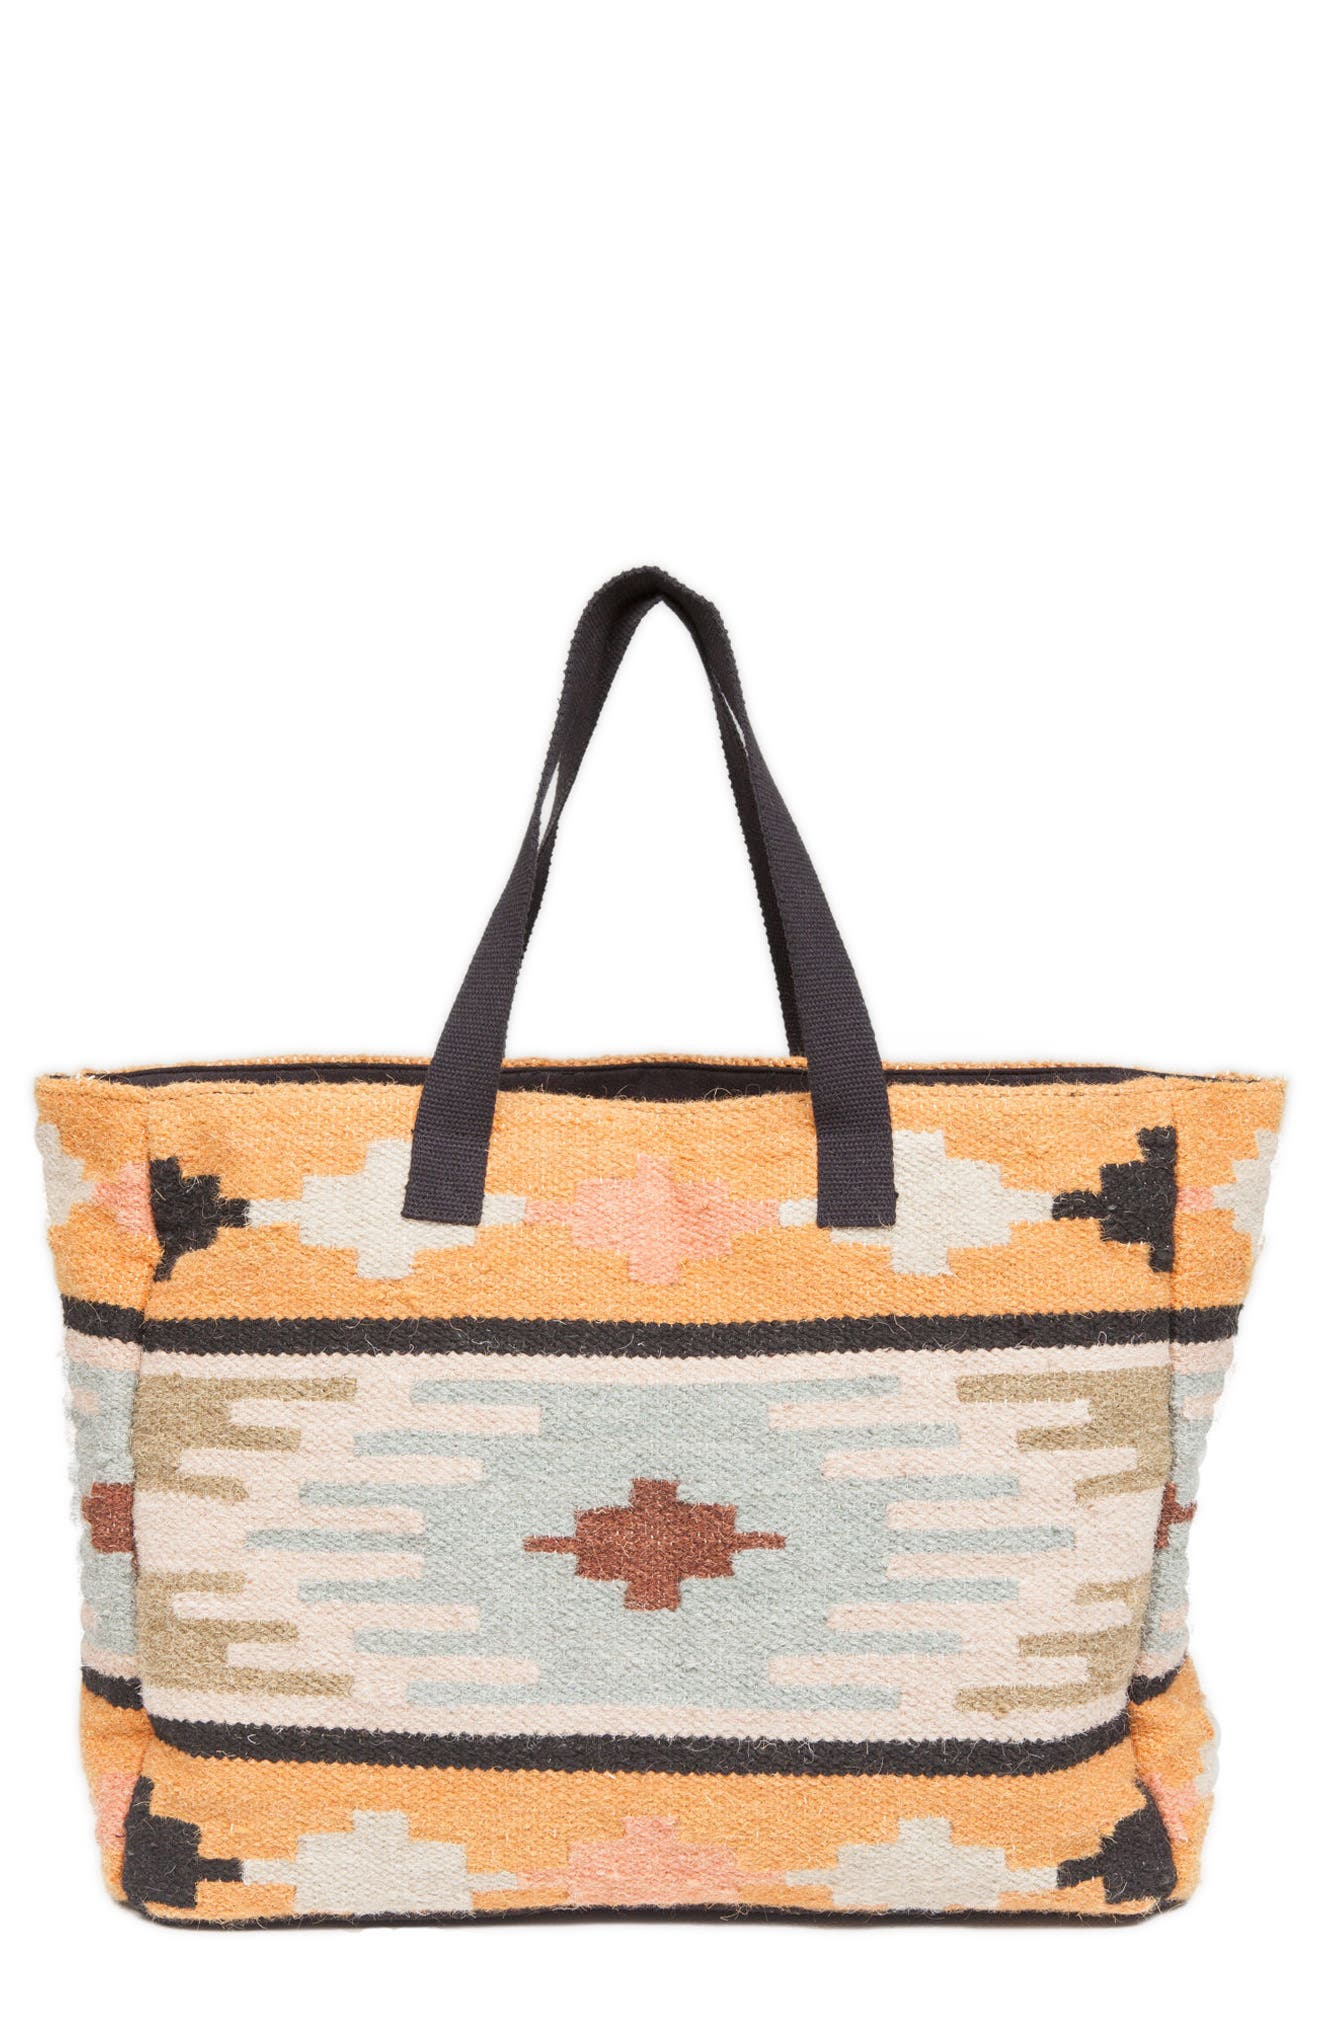 Permanent Vacation Tote,                         Main,                         color, Multi